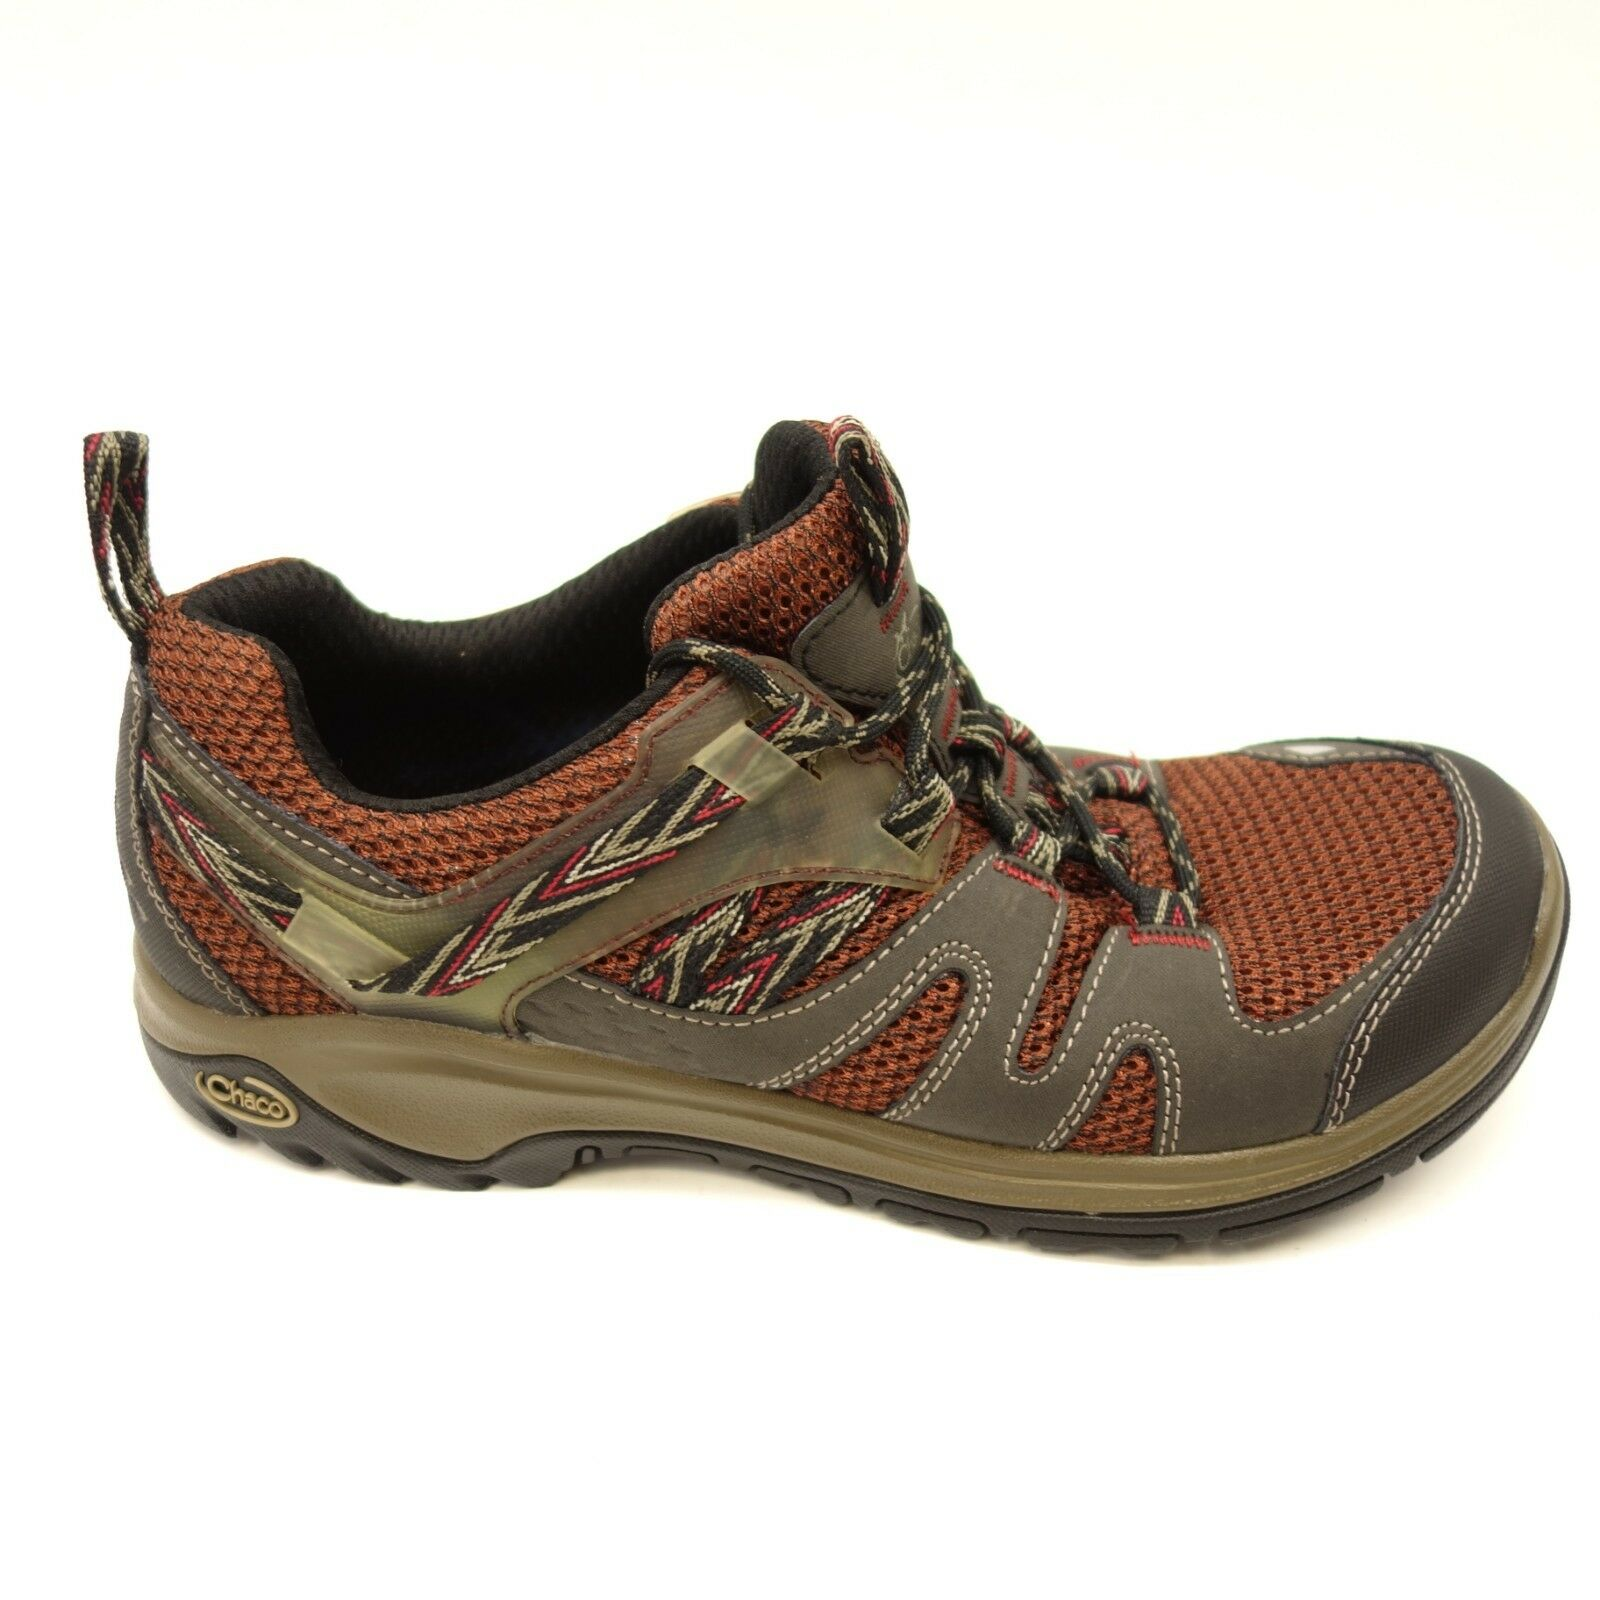 Chaco Mens rot Outcross Evo 4 Outdoor Athletic Trail Hiking Water schuhe Größe 9.5